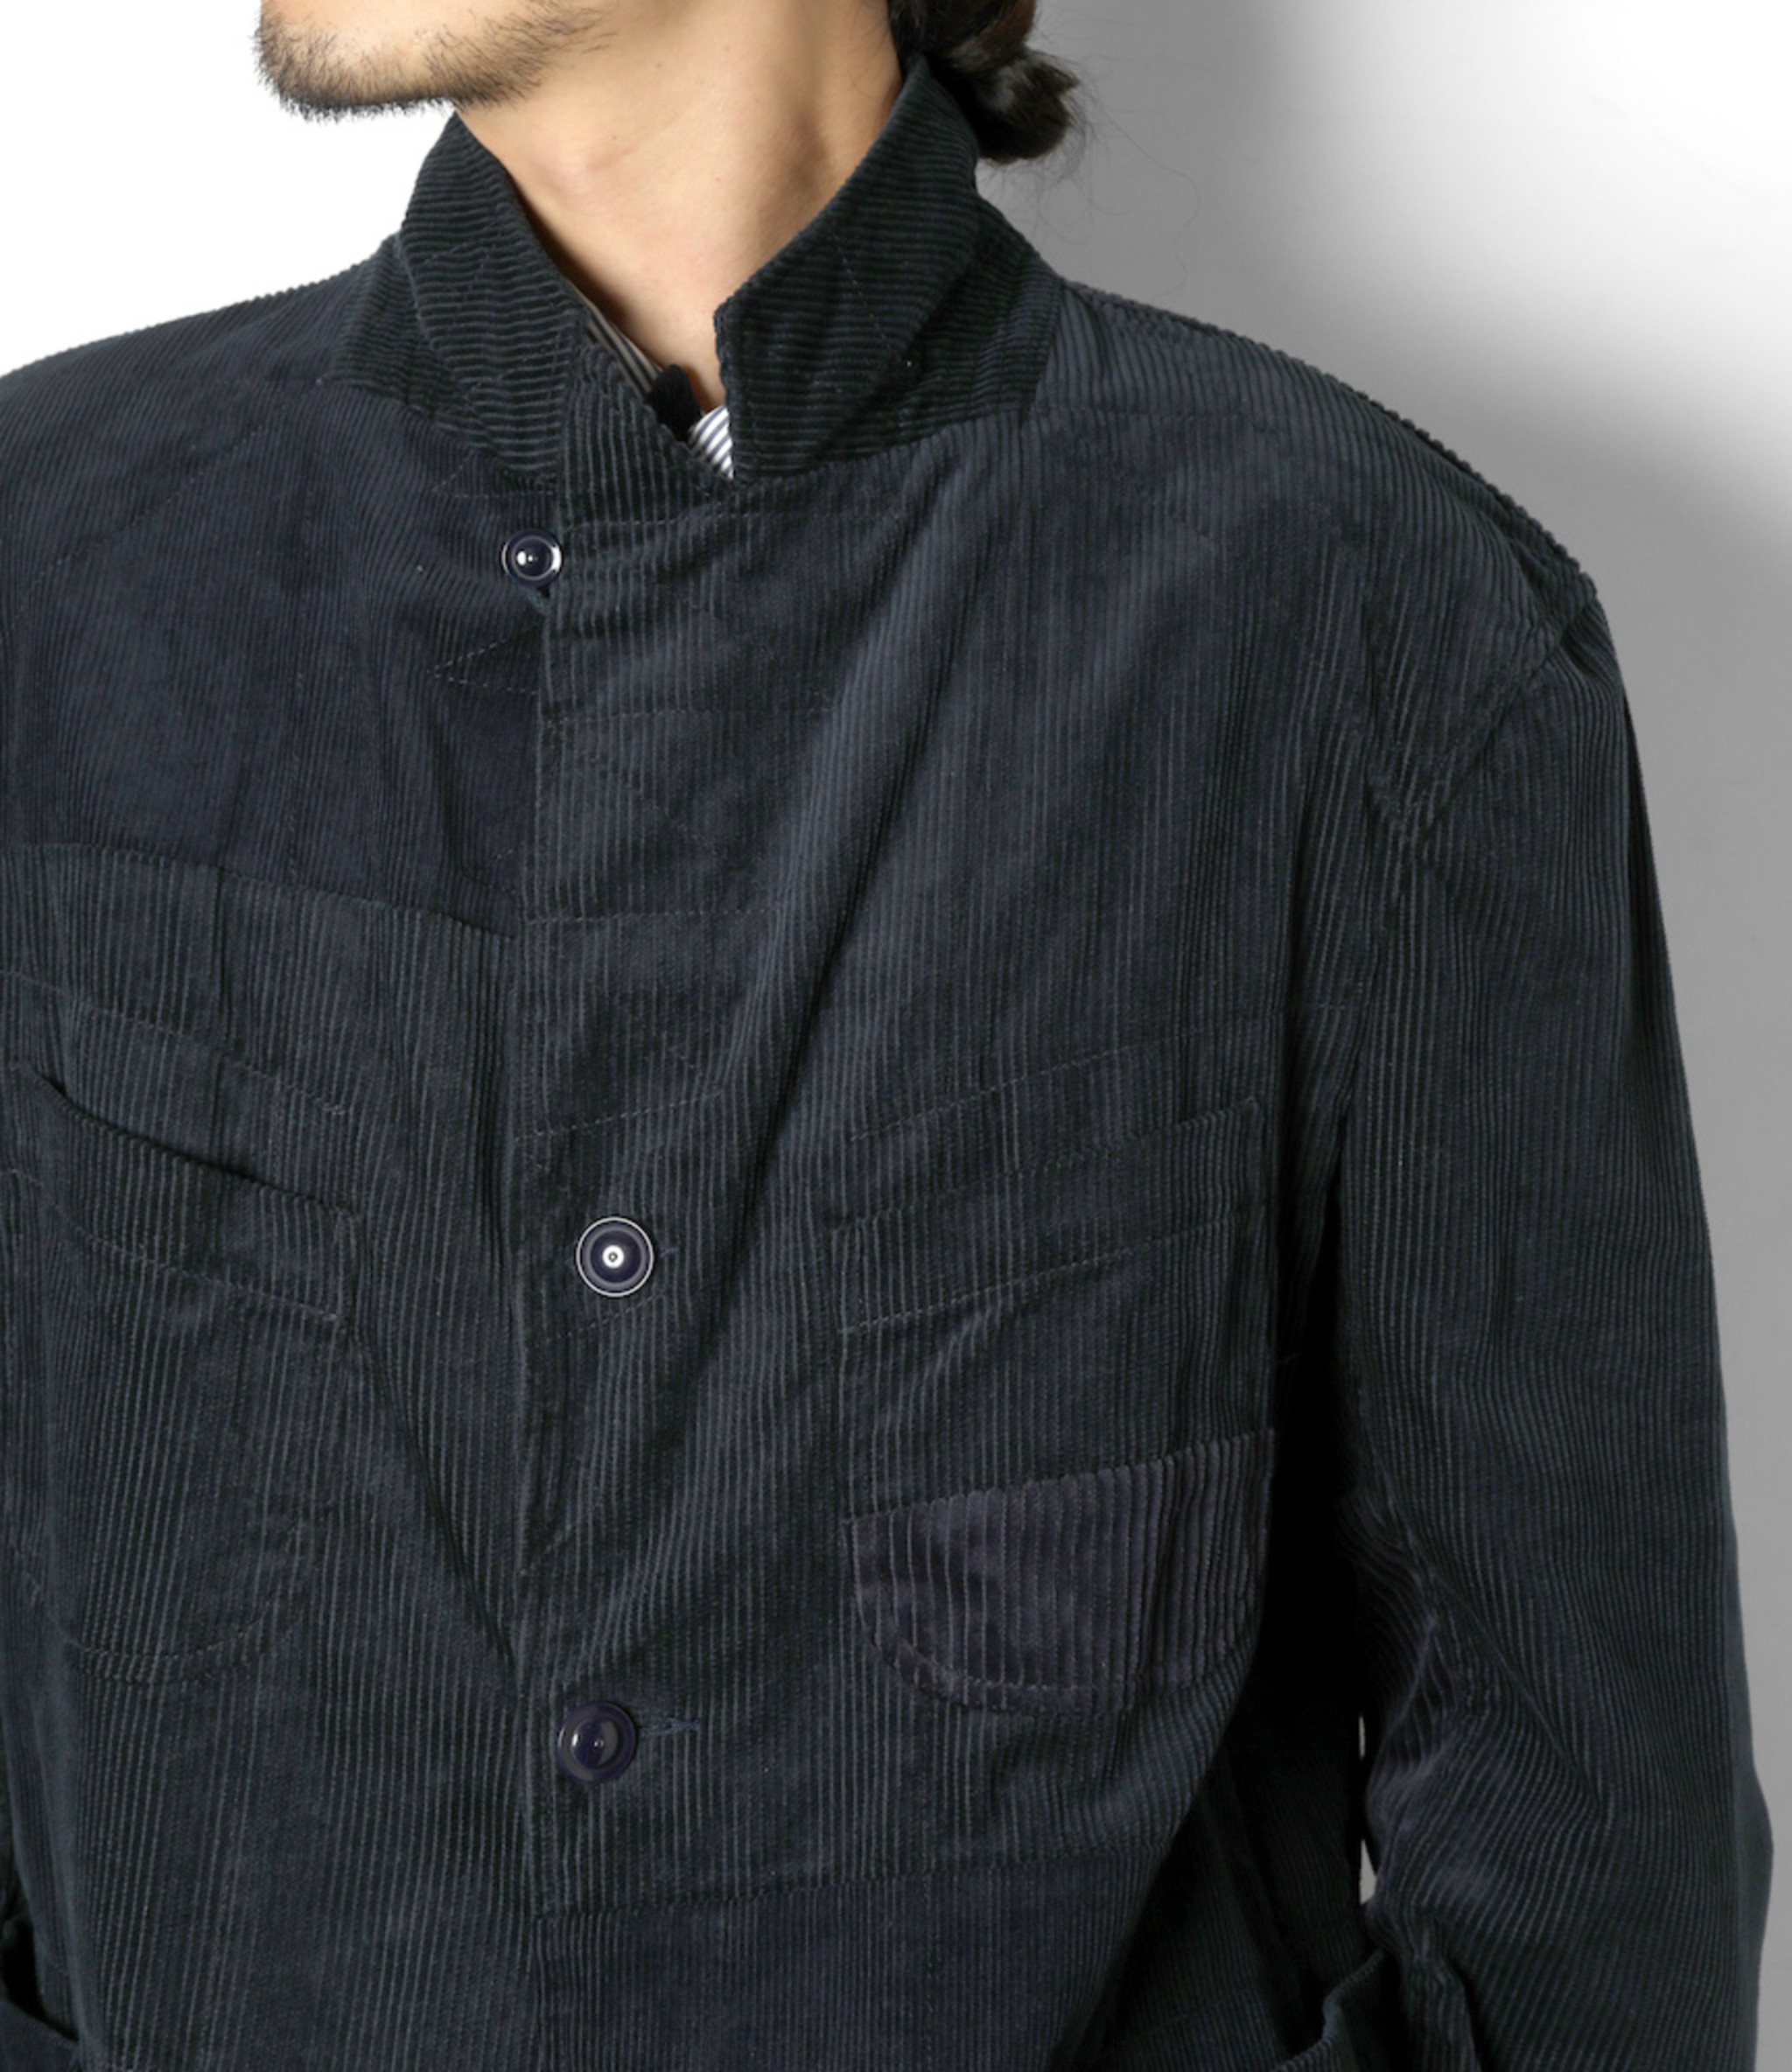 Engineered Garments Bedford Jacket - Navy Cotton 8W Corduroy